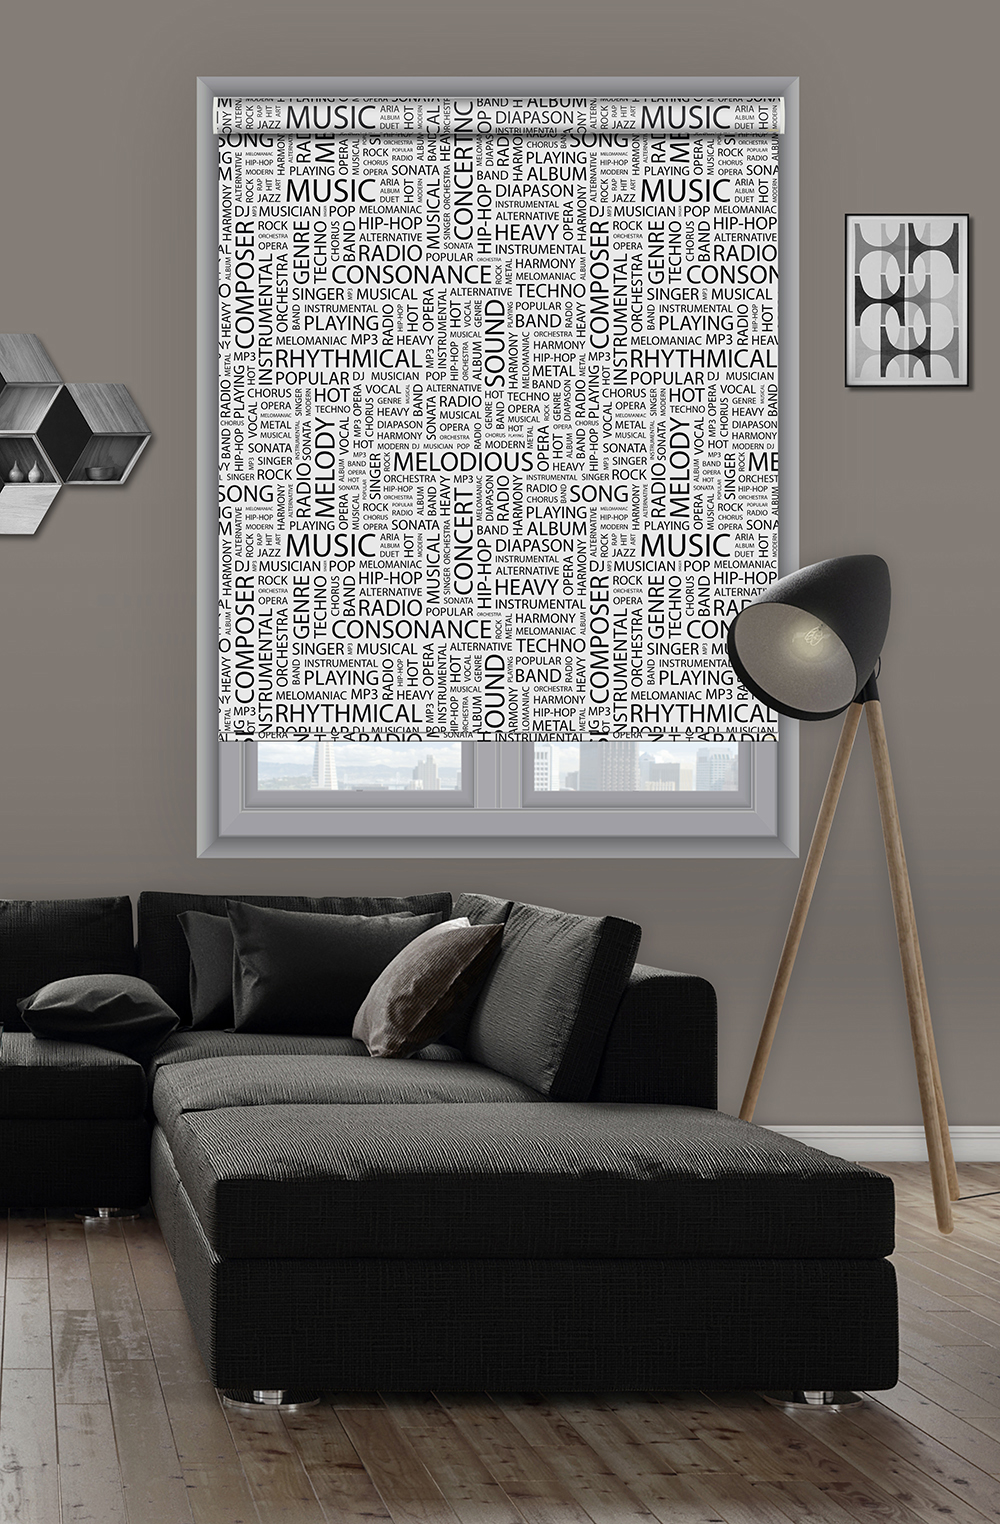 Roller printed BLINDS with words